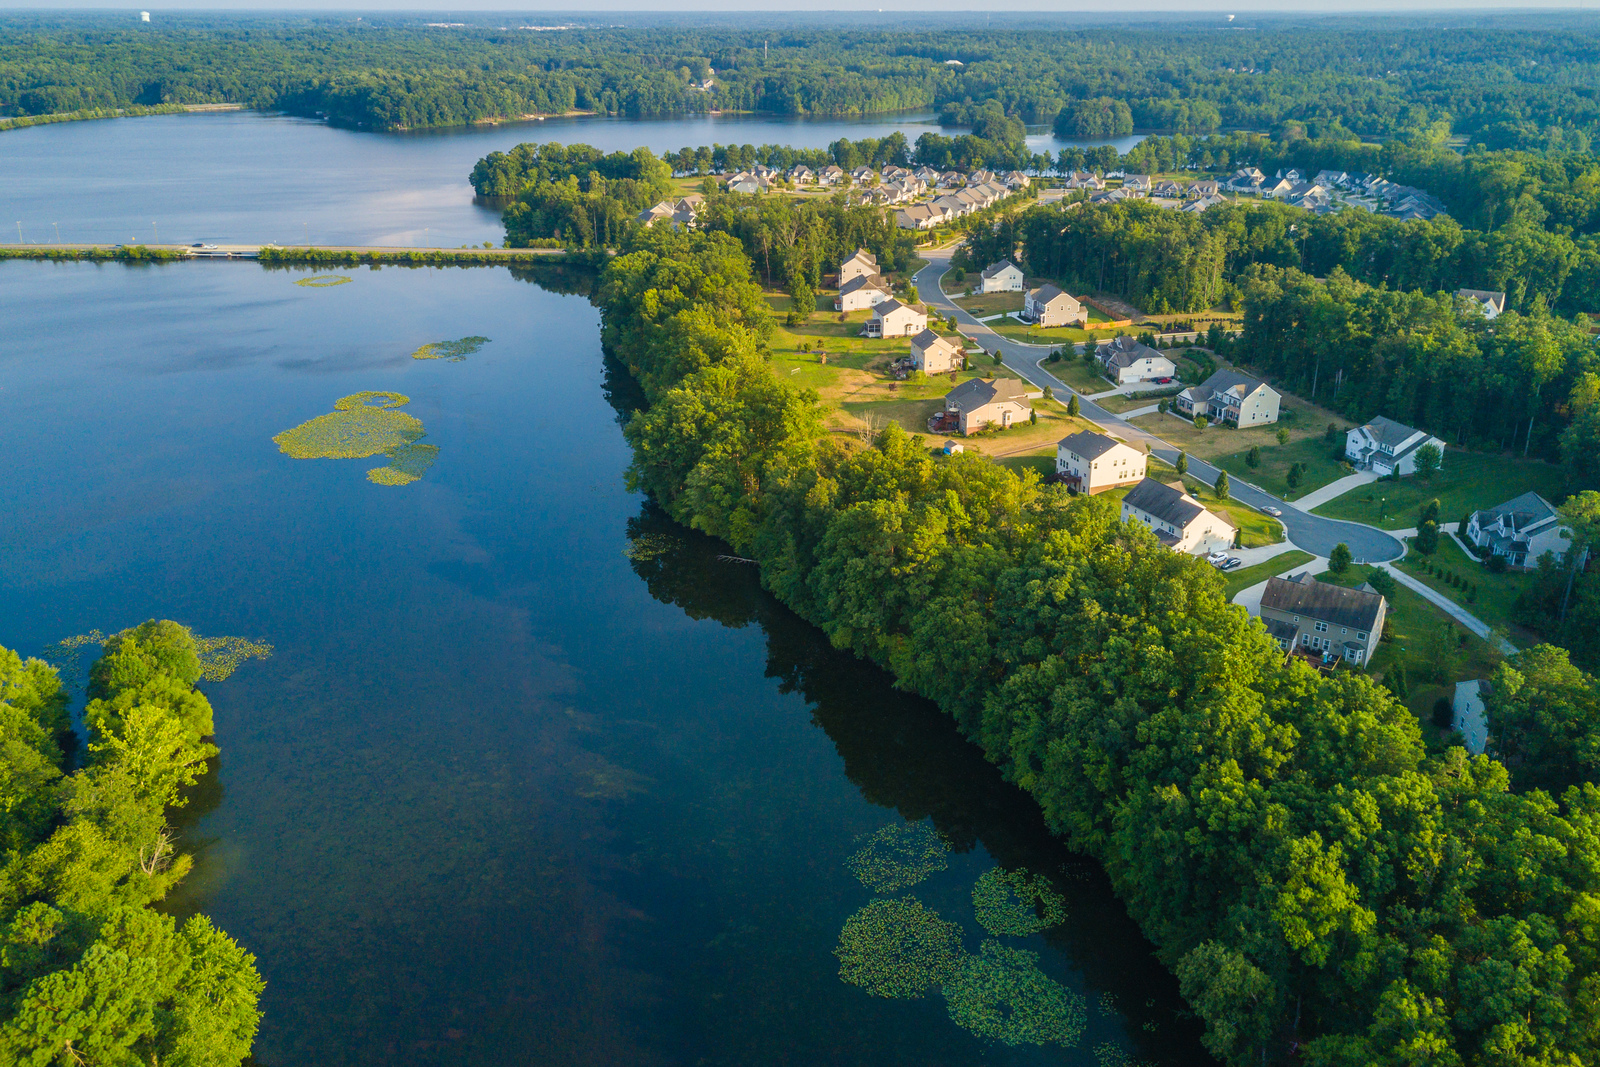 The Best Swift Creek Reservoir access community in Cosby HS district. Our new section offers waterfront homesites starting from the 340's. Schedule a visit today!